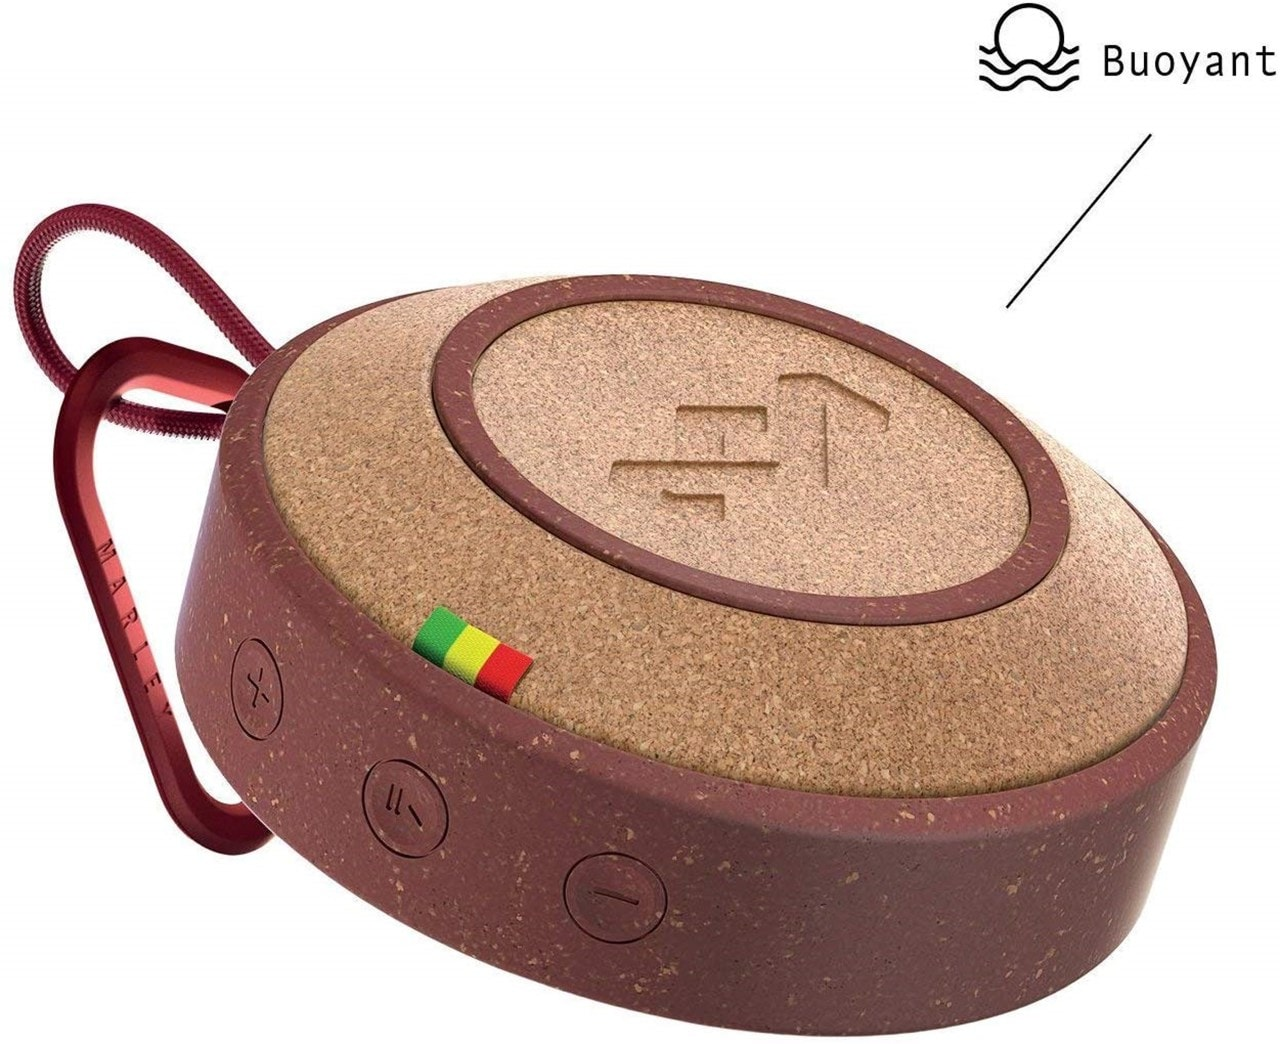 House Of Marley No Bounds Red Bluetooth Speaker - 5